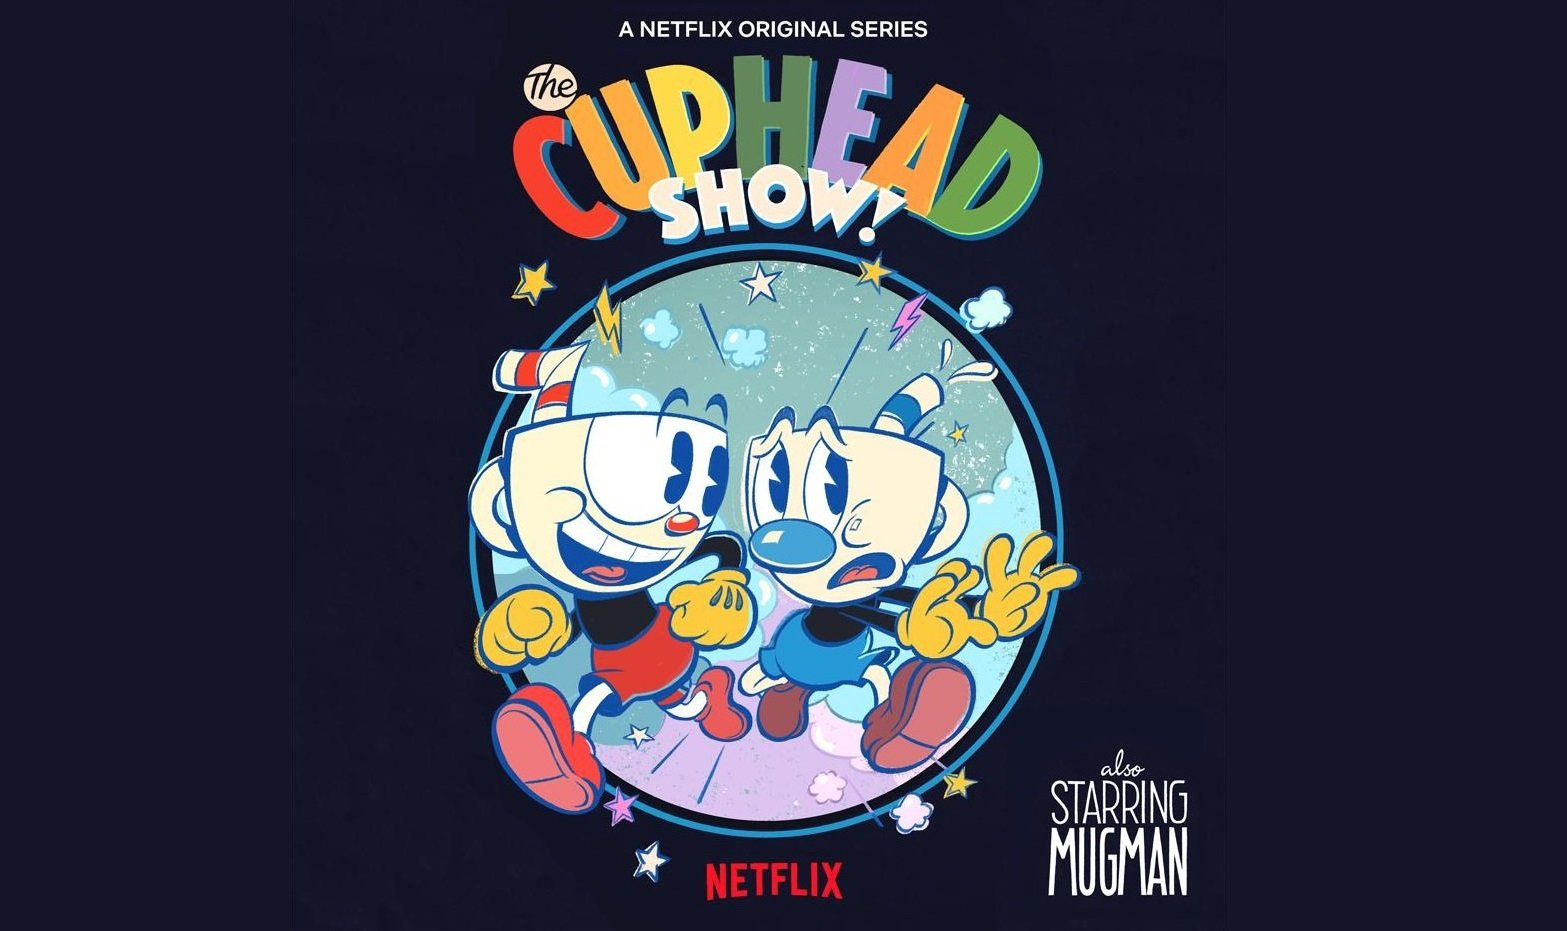 Trailer for Netflix's Cuphead adaptation revealed